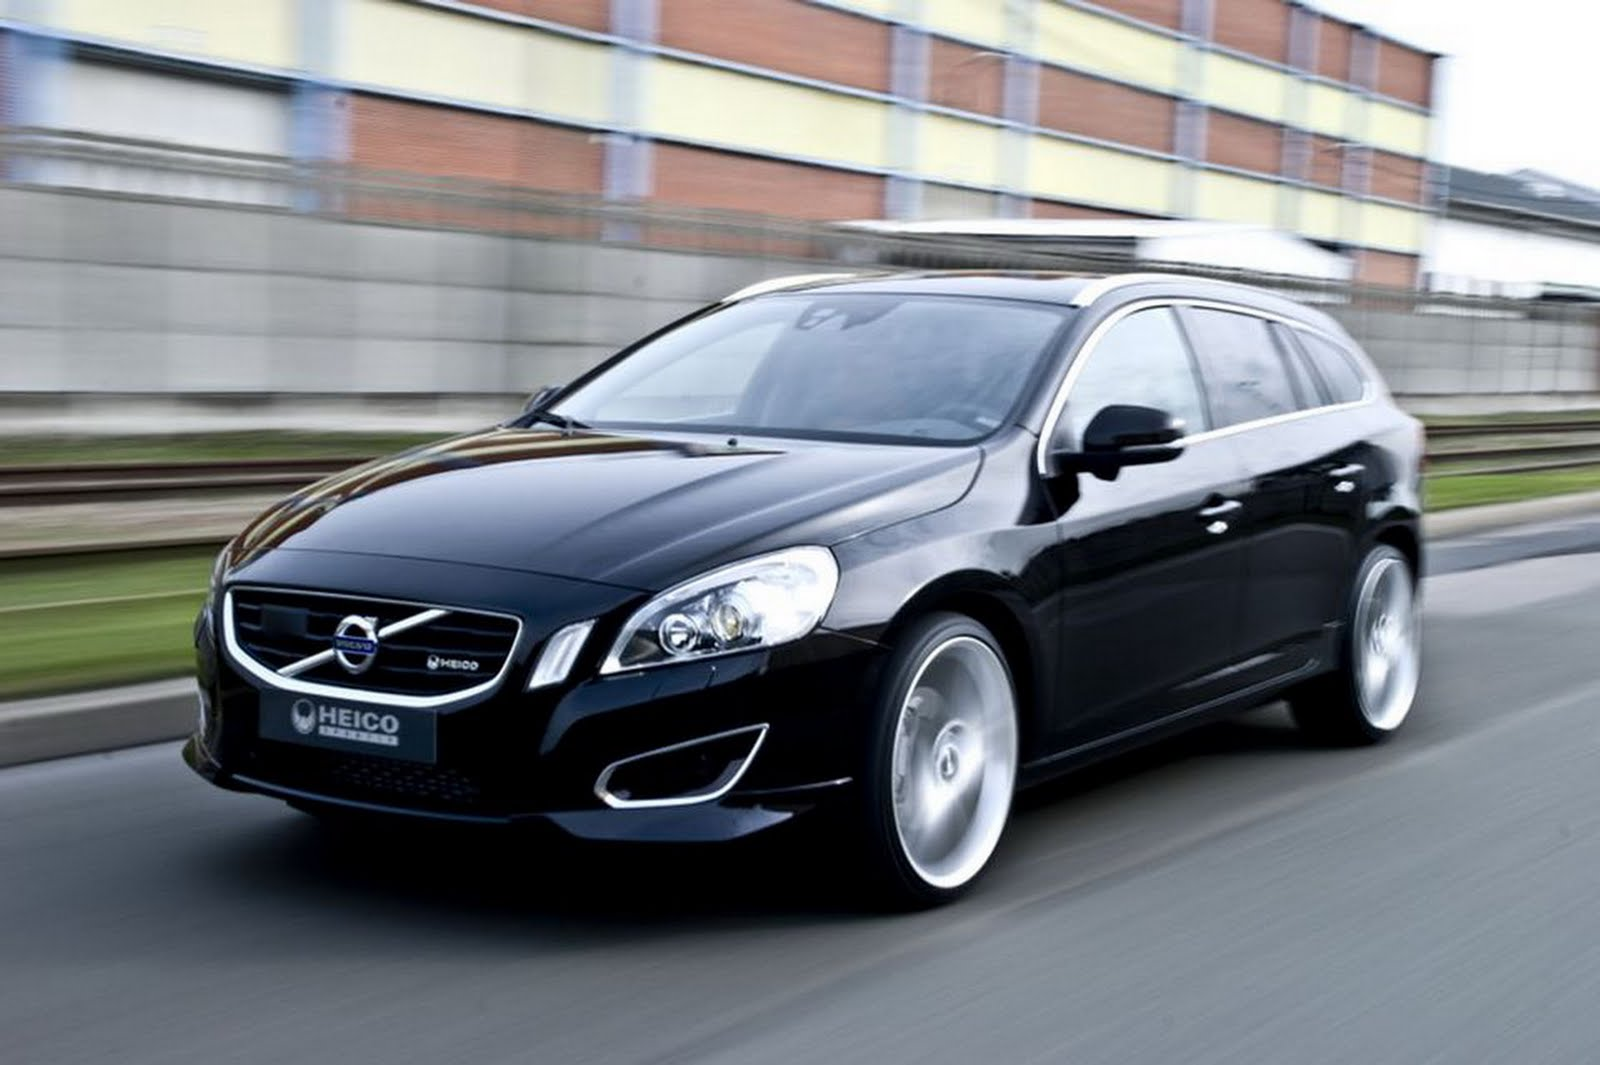 Volvo S60 Price >> Amazing Automobile: Volvo V60 2011 Stills, Wallpapers, Pictures and Photos